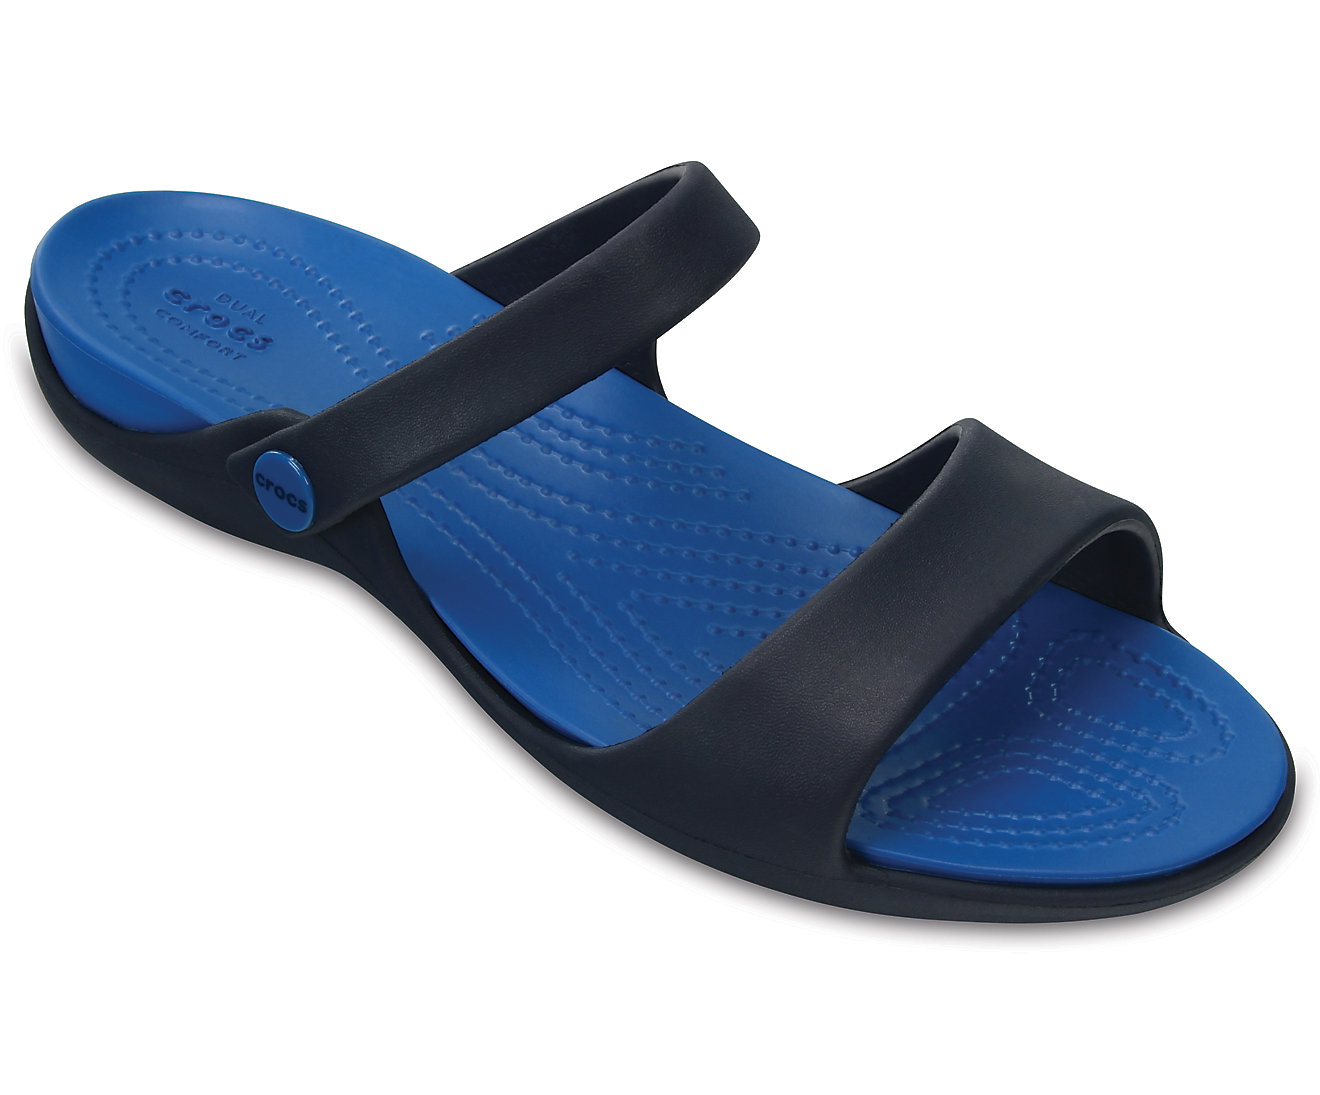 CROCS Cleo V Sandals 204268 Navy/Ultramarine Μπλε σκούρο